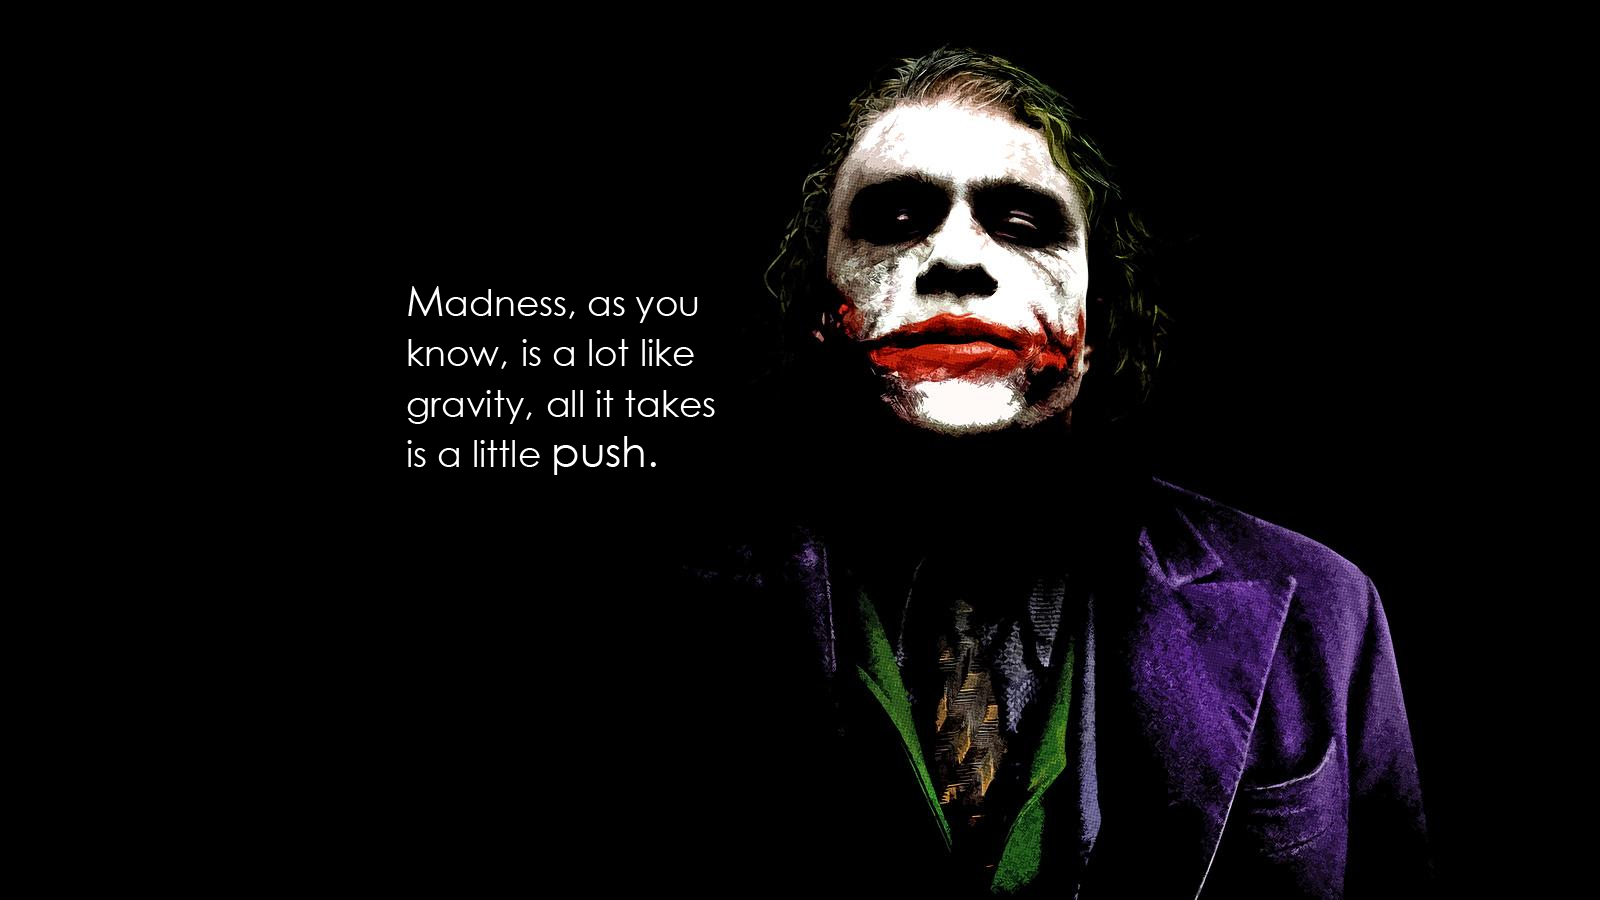 batman joker dark knight quotes - photo #1